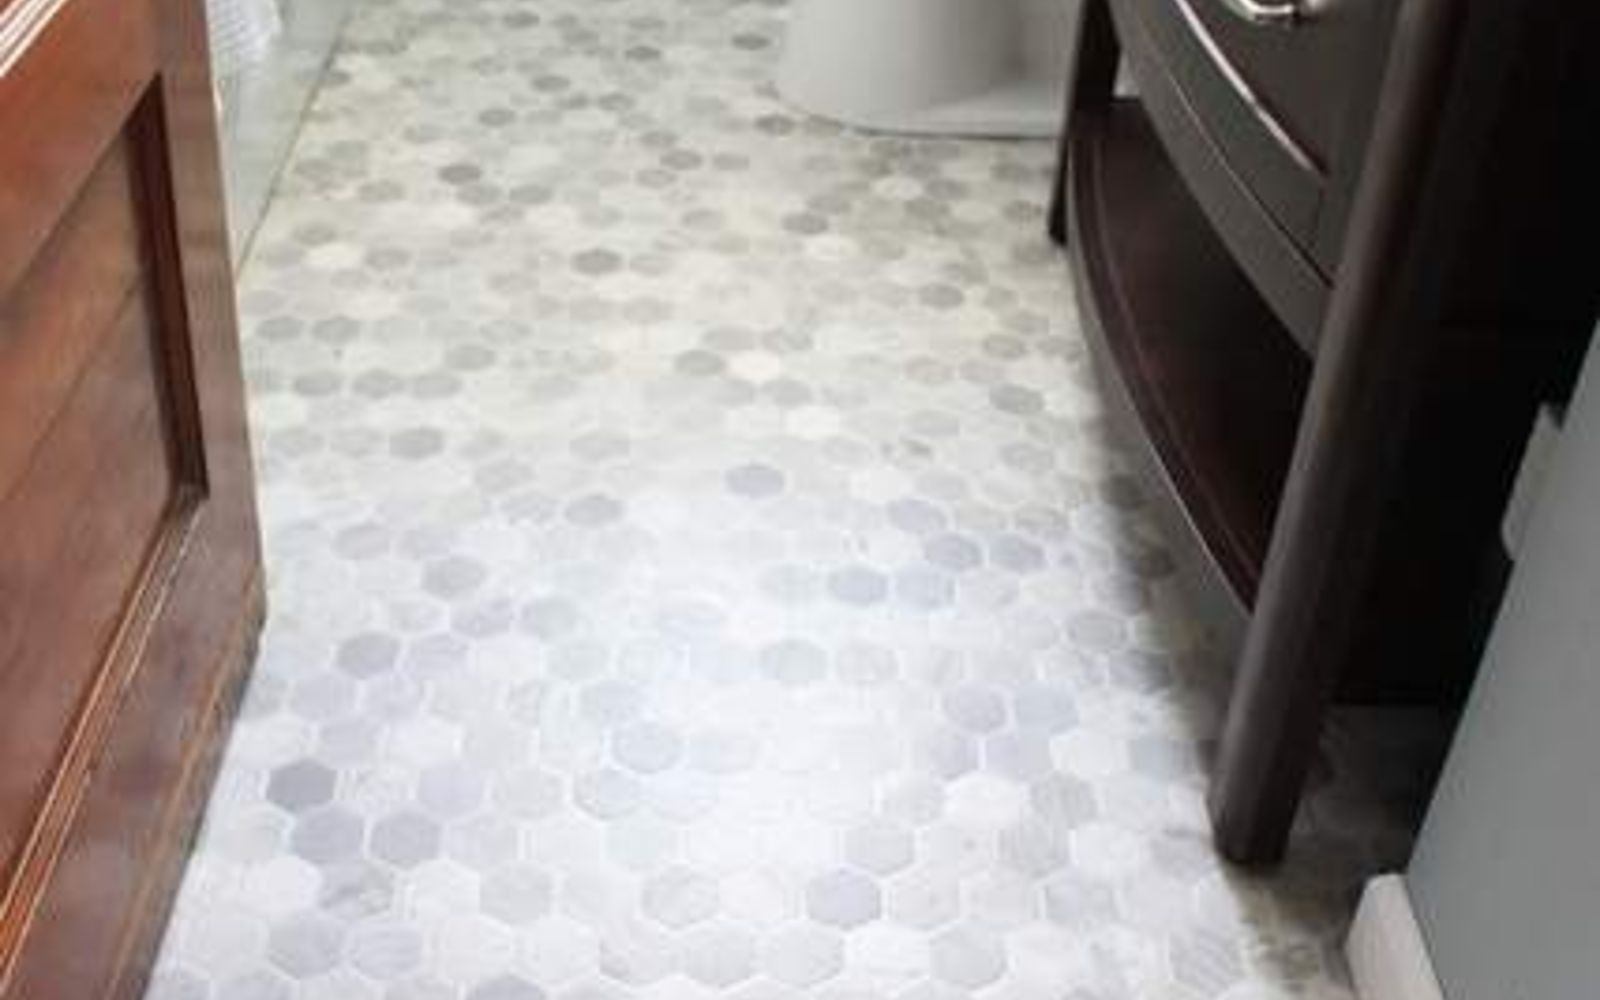 s 11 actually helpful tricks for decorating a small bathroom, bathroom ideas, Cut a brand new floor out of one vinyl sheet